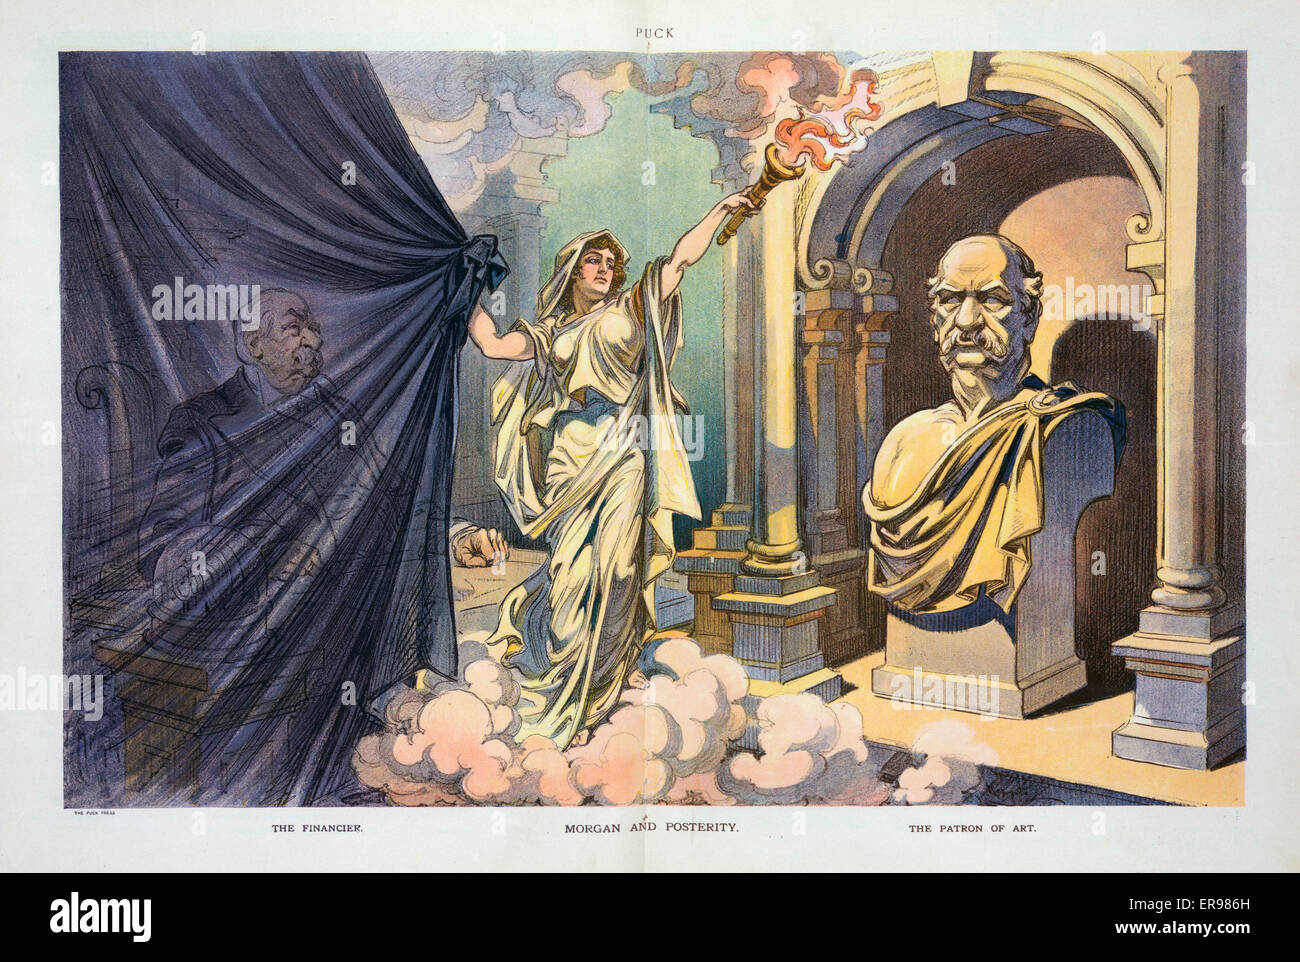 Morgan and posterity. Illustration shows an angel drawing a curtain over the figure of JP Morgan sitting in a chair - Stock Image